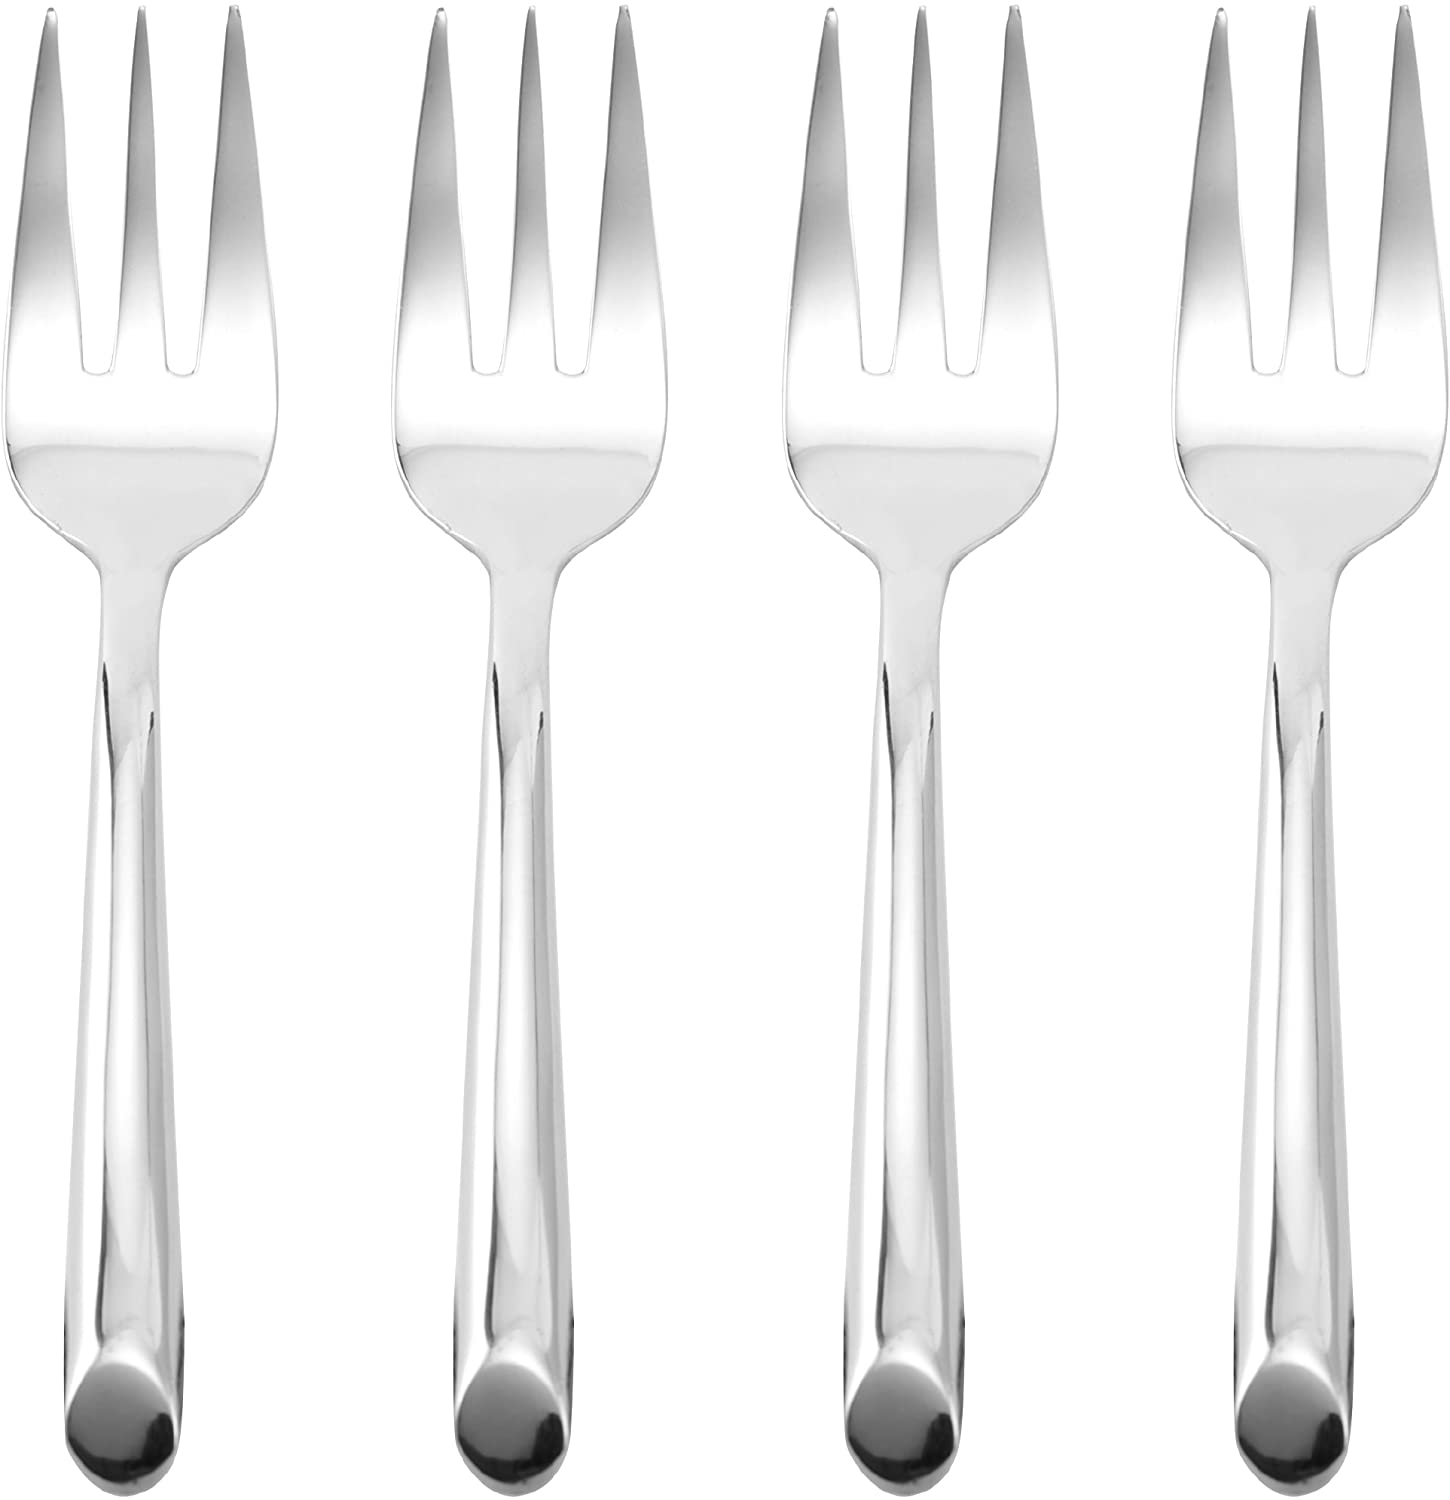 Towle Living Wave Stainless Steel Cocktail Fork, Set of 4